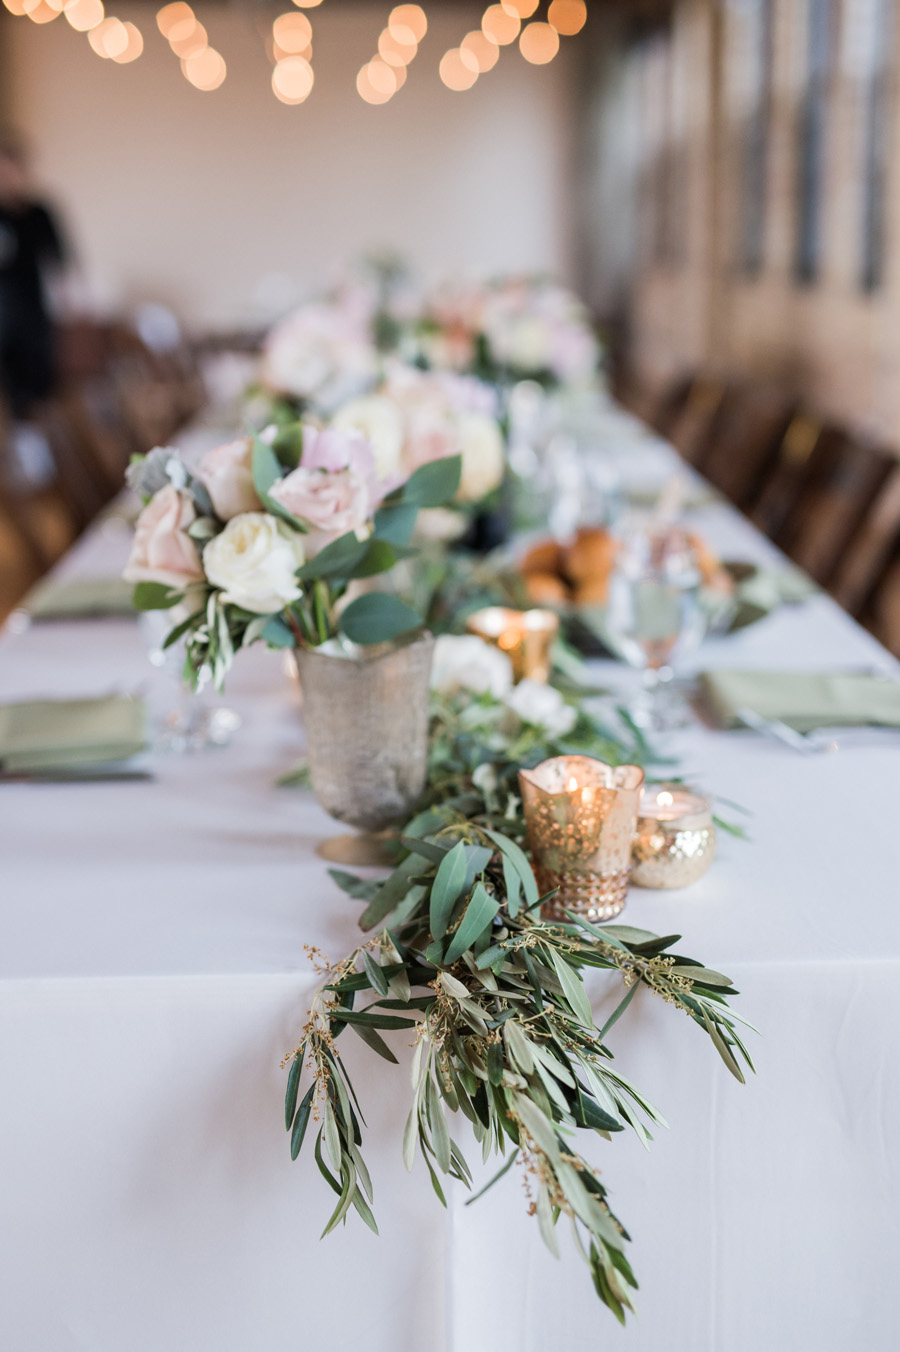 Detail photo of reception table setting.